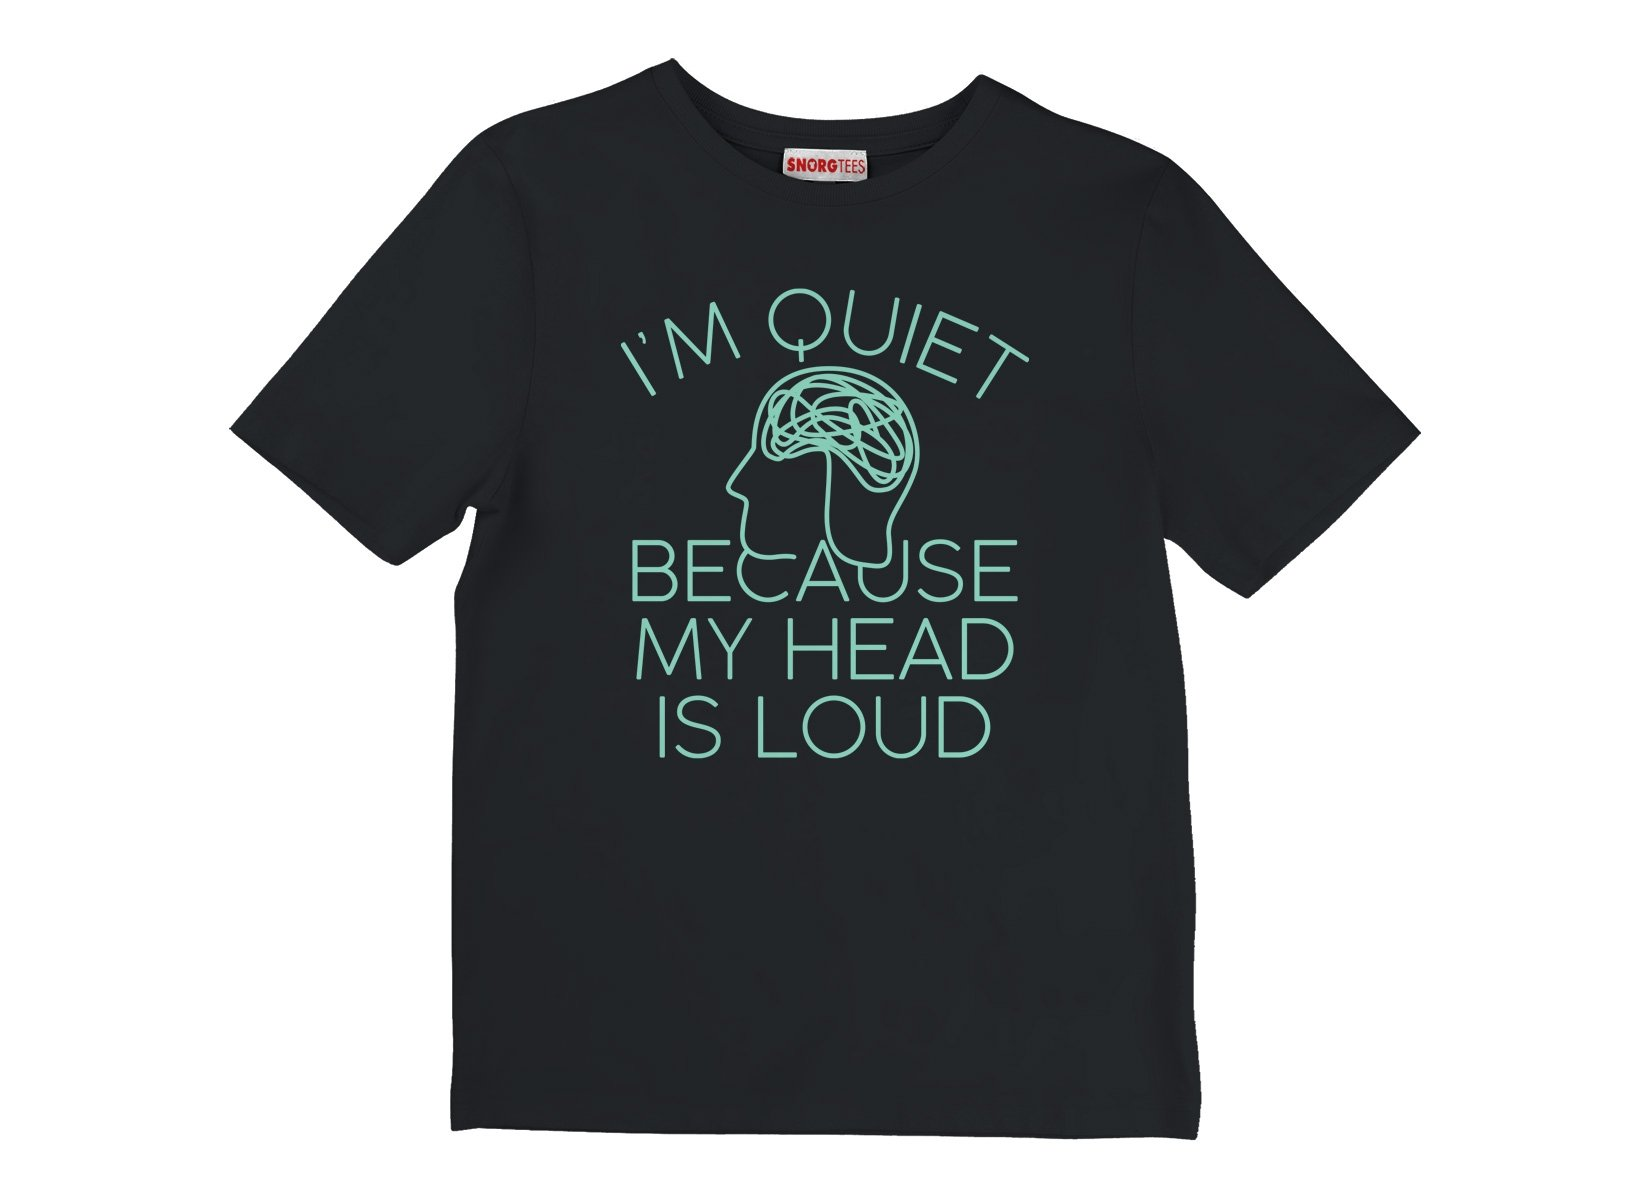 I'm Quiet Because My Head Is Loud on Kids T-Shirt